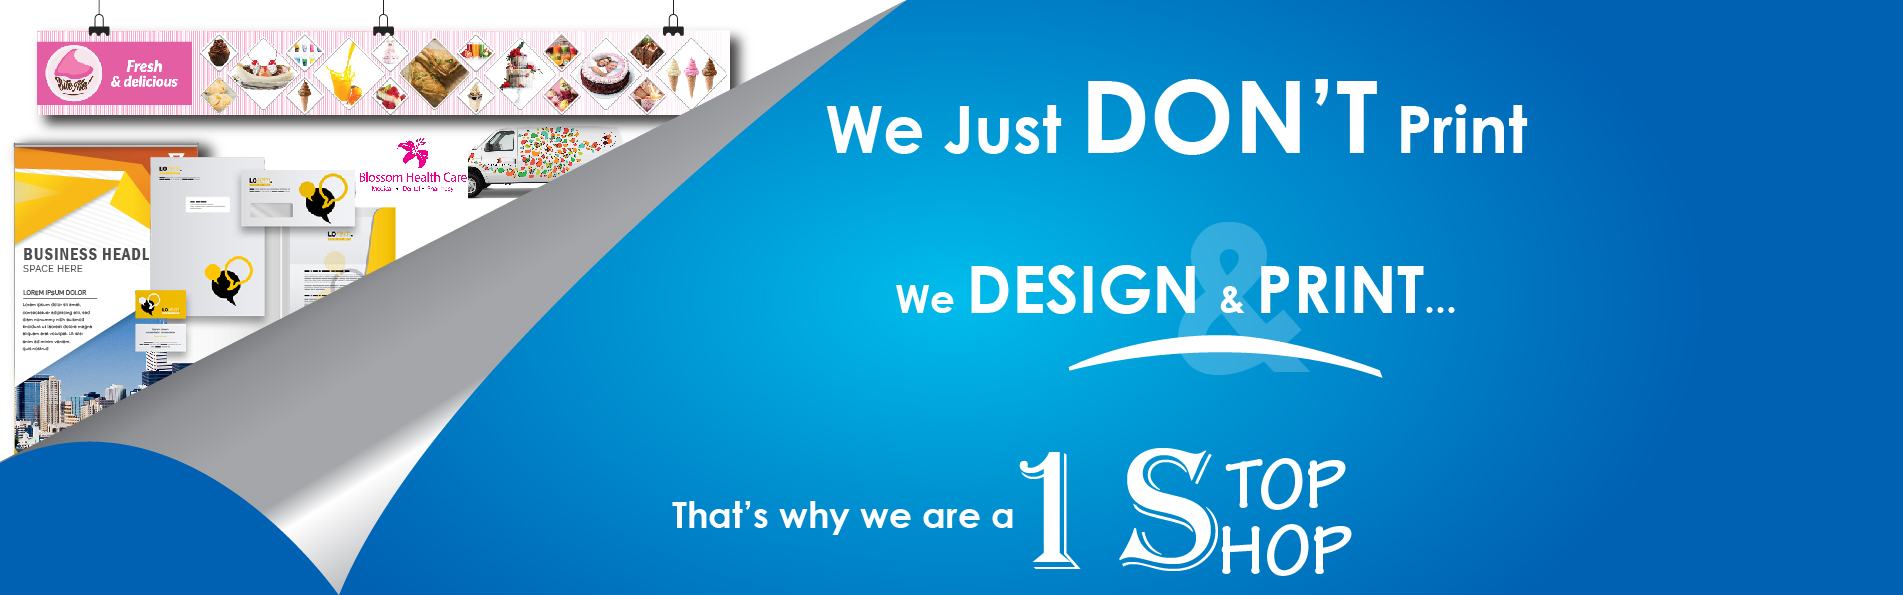 home_page_banners_1-01.jpg